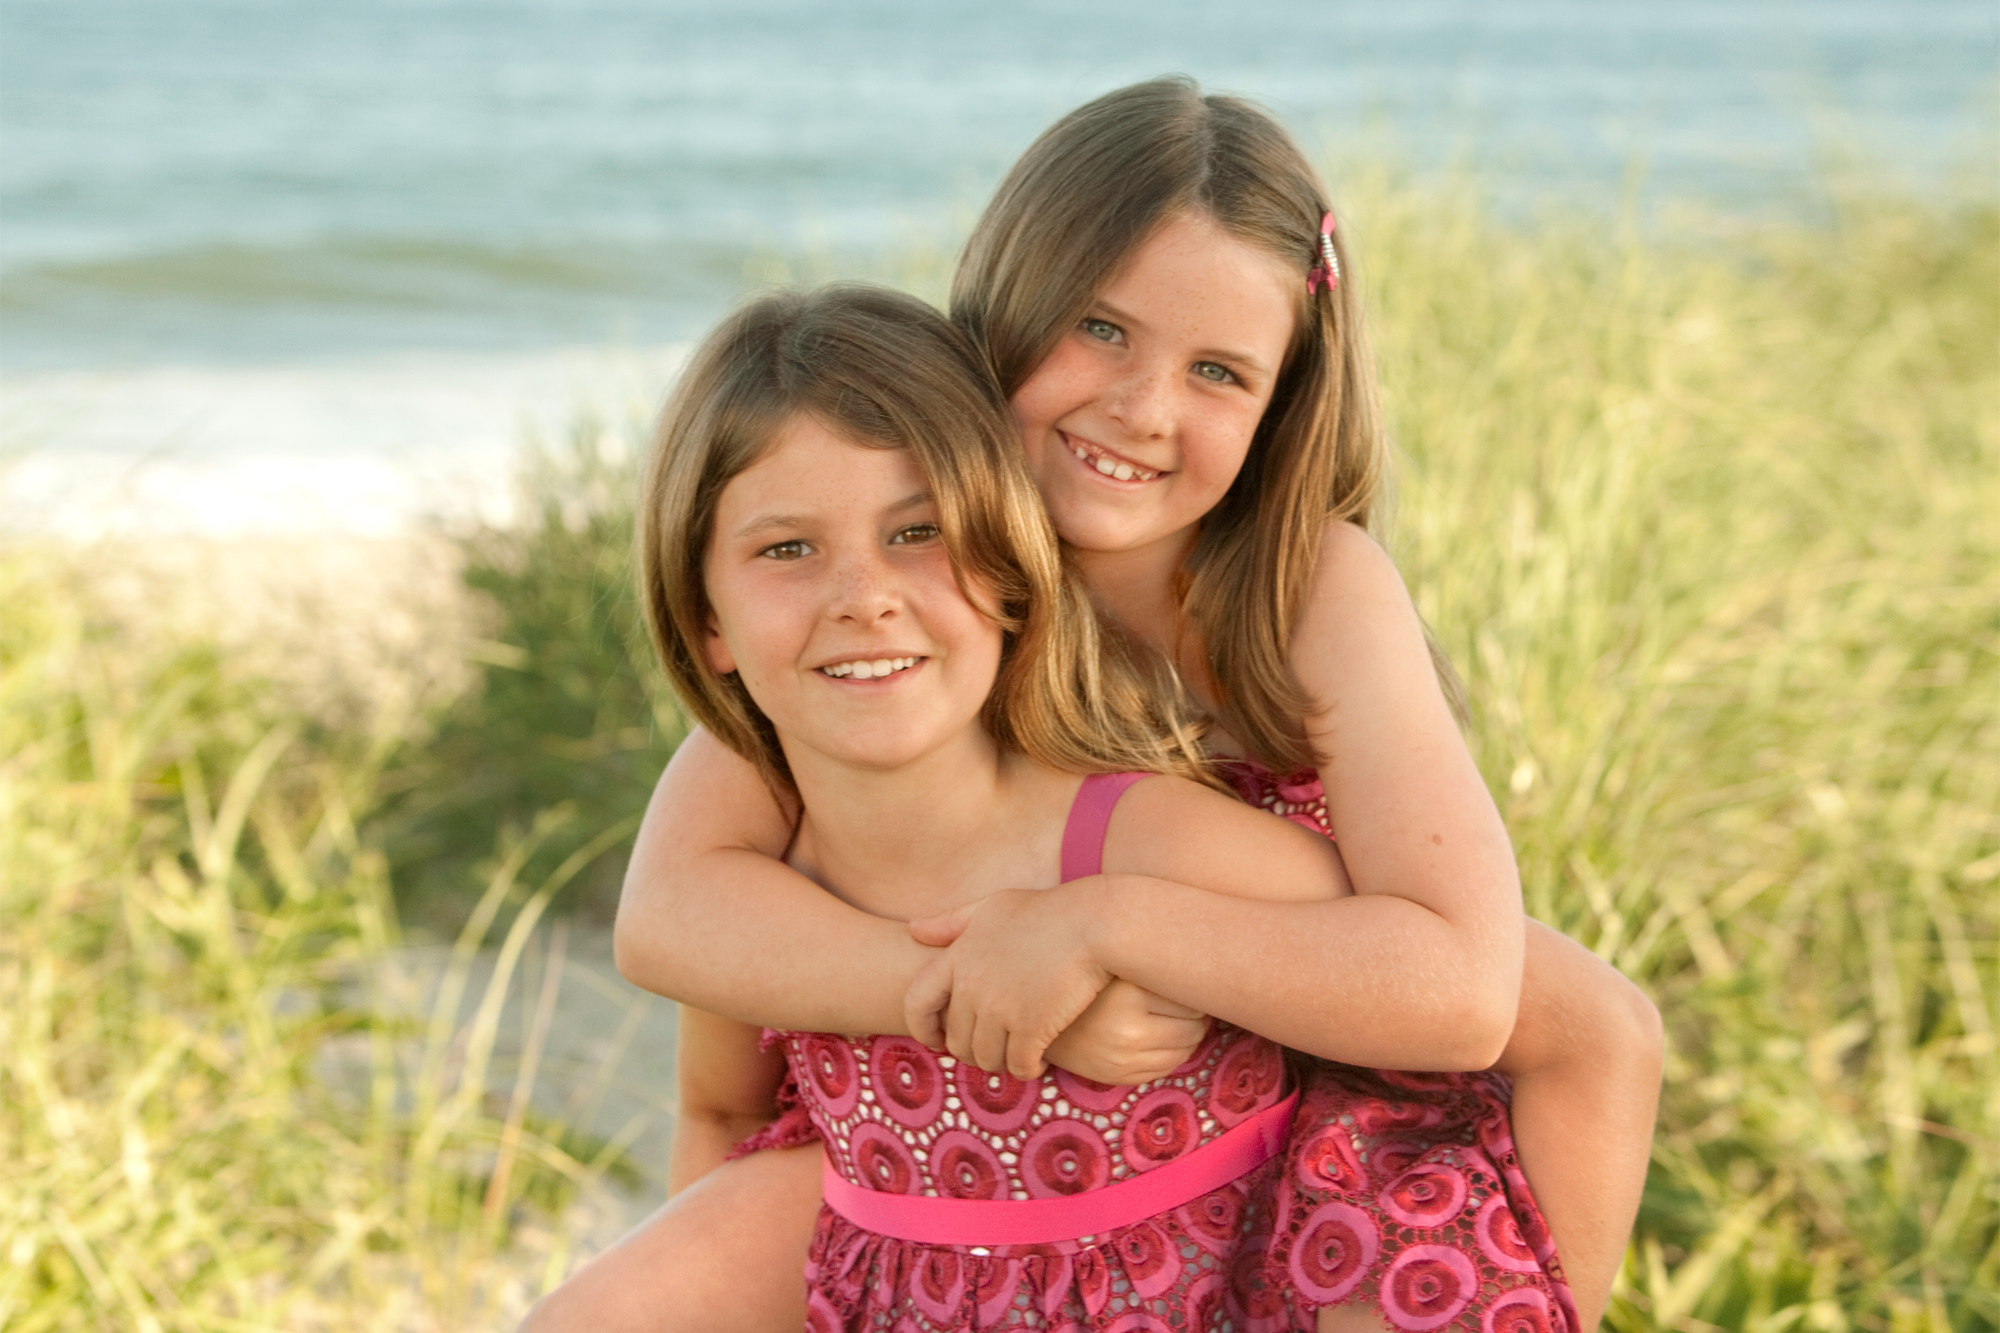 Sisters Piggyback near the Westhampton Beach